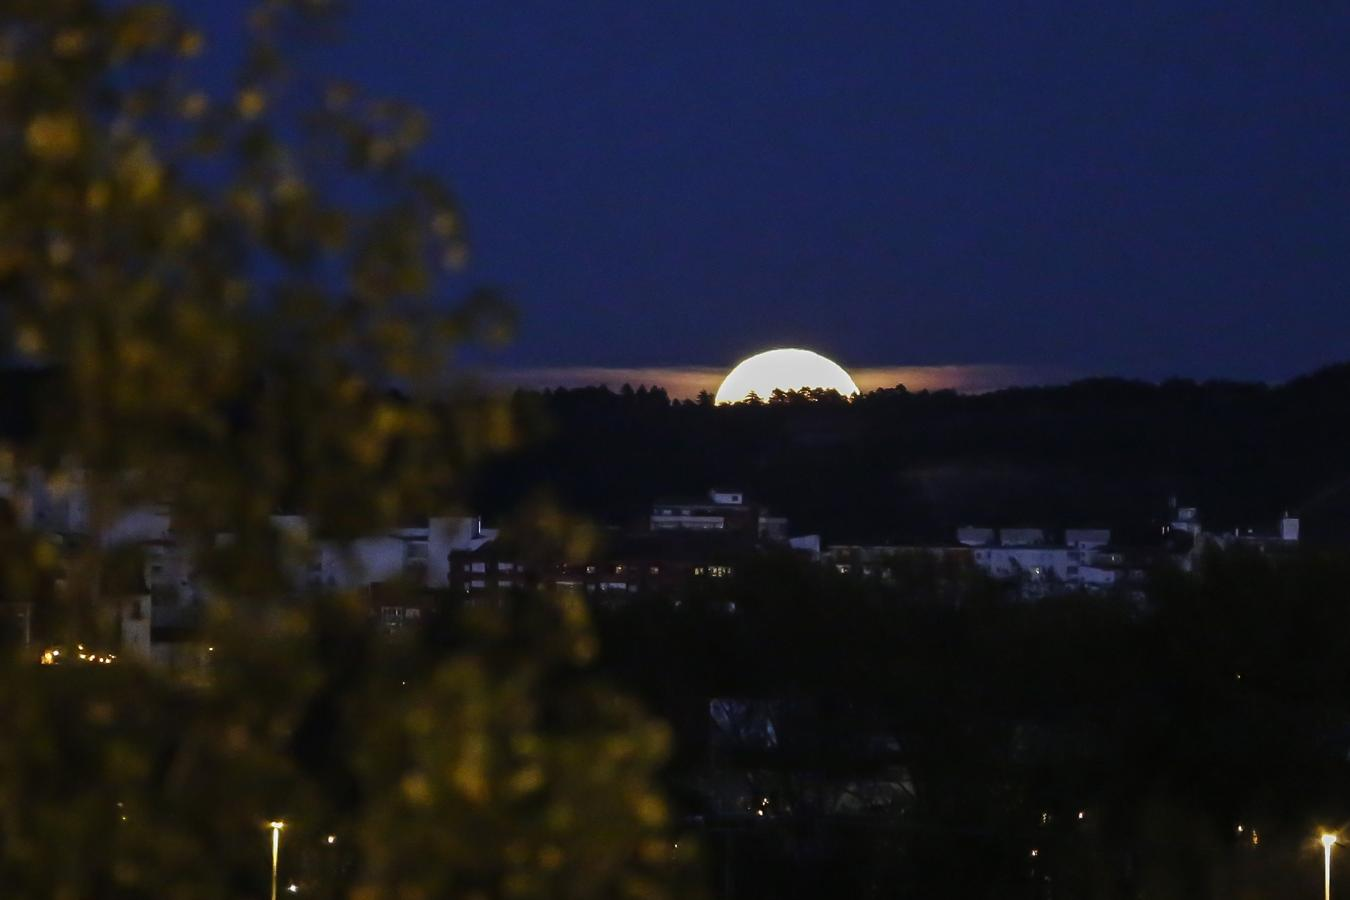 La superluna, desde la capital leonesa